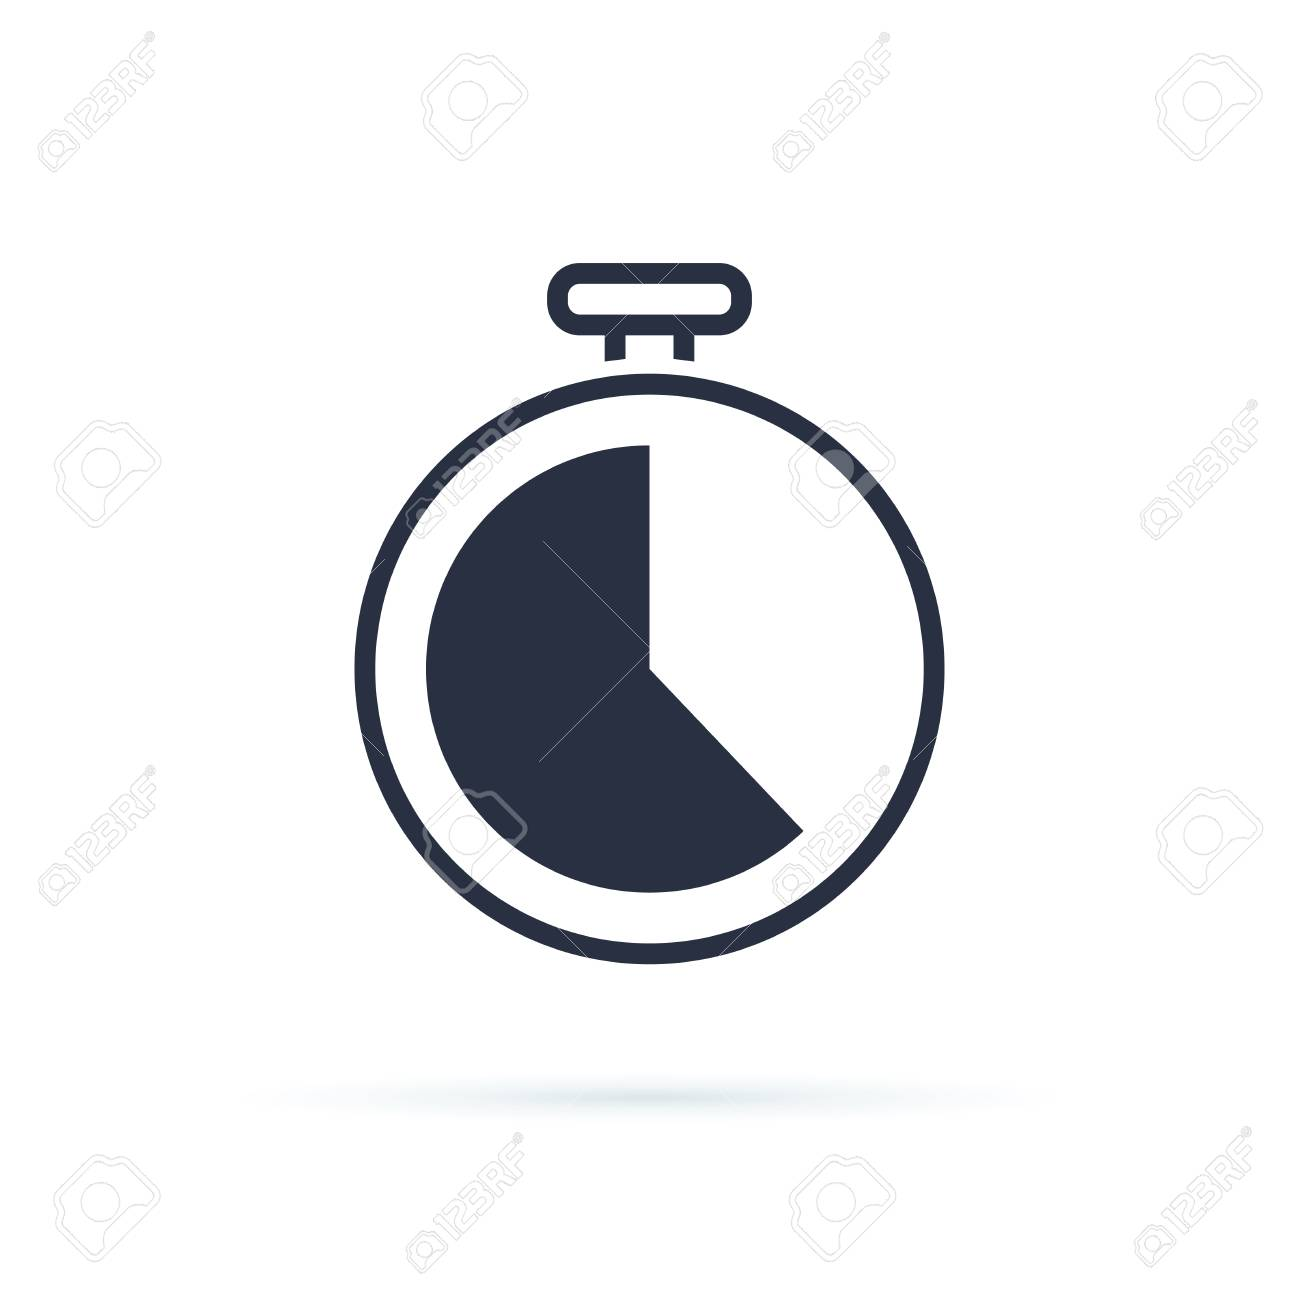 Time icon. Clock icon vector. Business deadline, clockwise countdown, working hours icon. Stopwatch symbol for speed or fast delivery isolated on white background. Timer or watch sign for website - 126132567